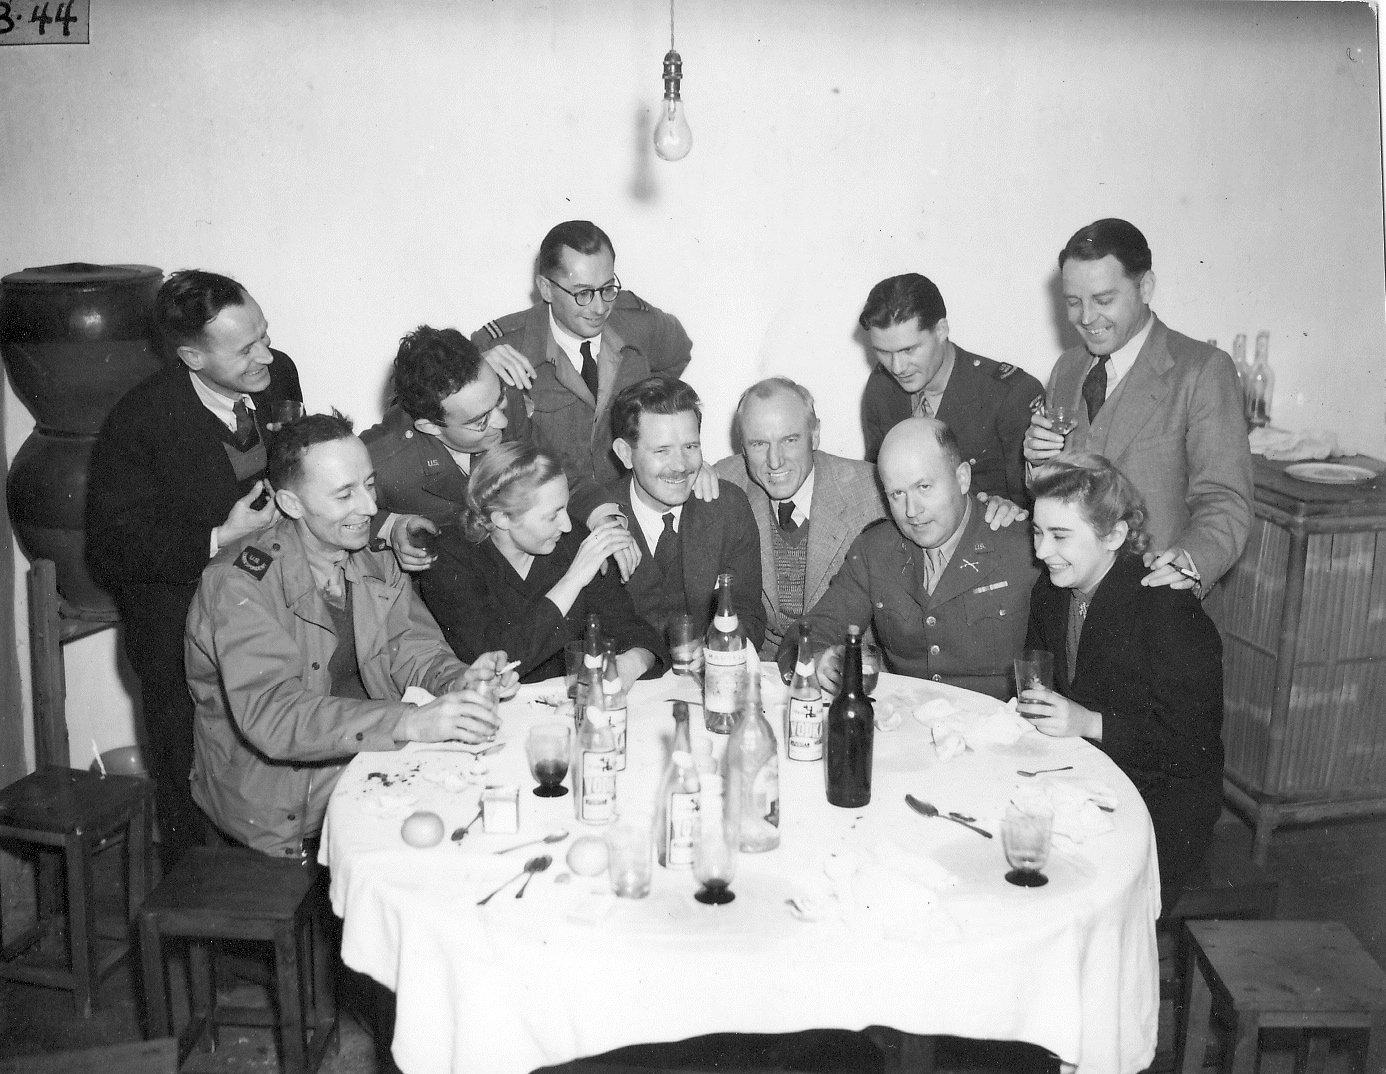 Max (standing on right), WL Bond of CNAC (fifth from right) and unidentified friends in prewar Hong Kong